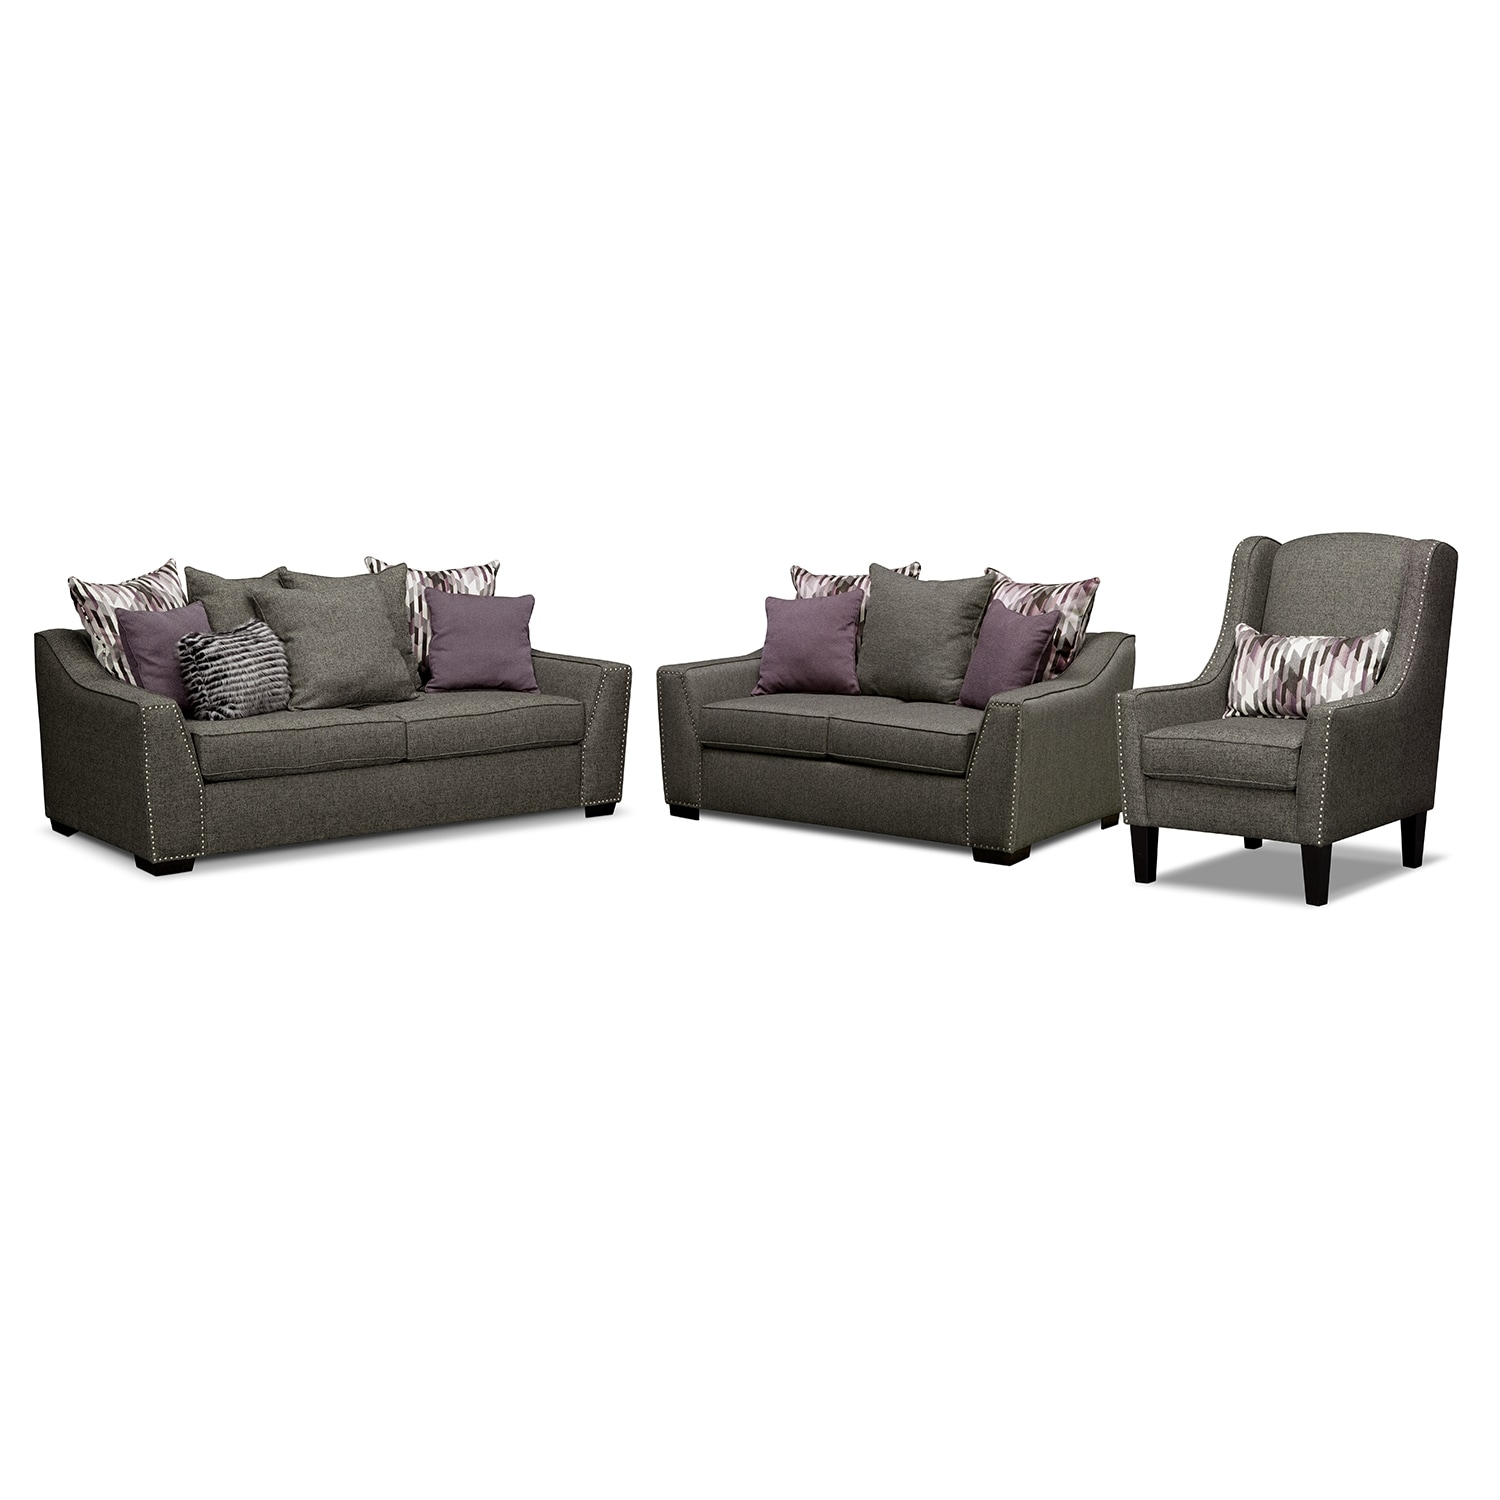 Ritz 3 Pc. Living Room w/Accent Chair